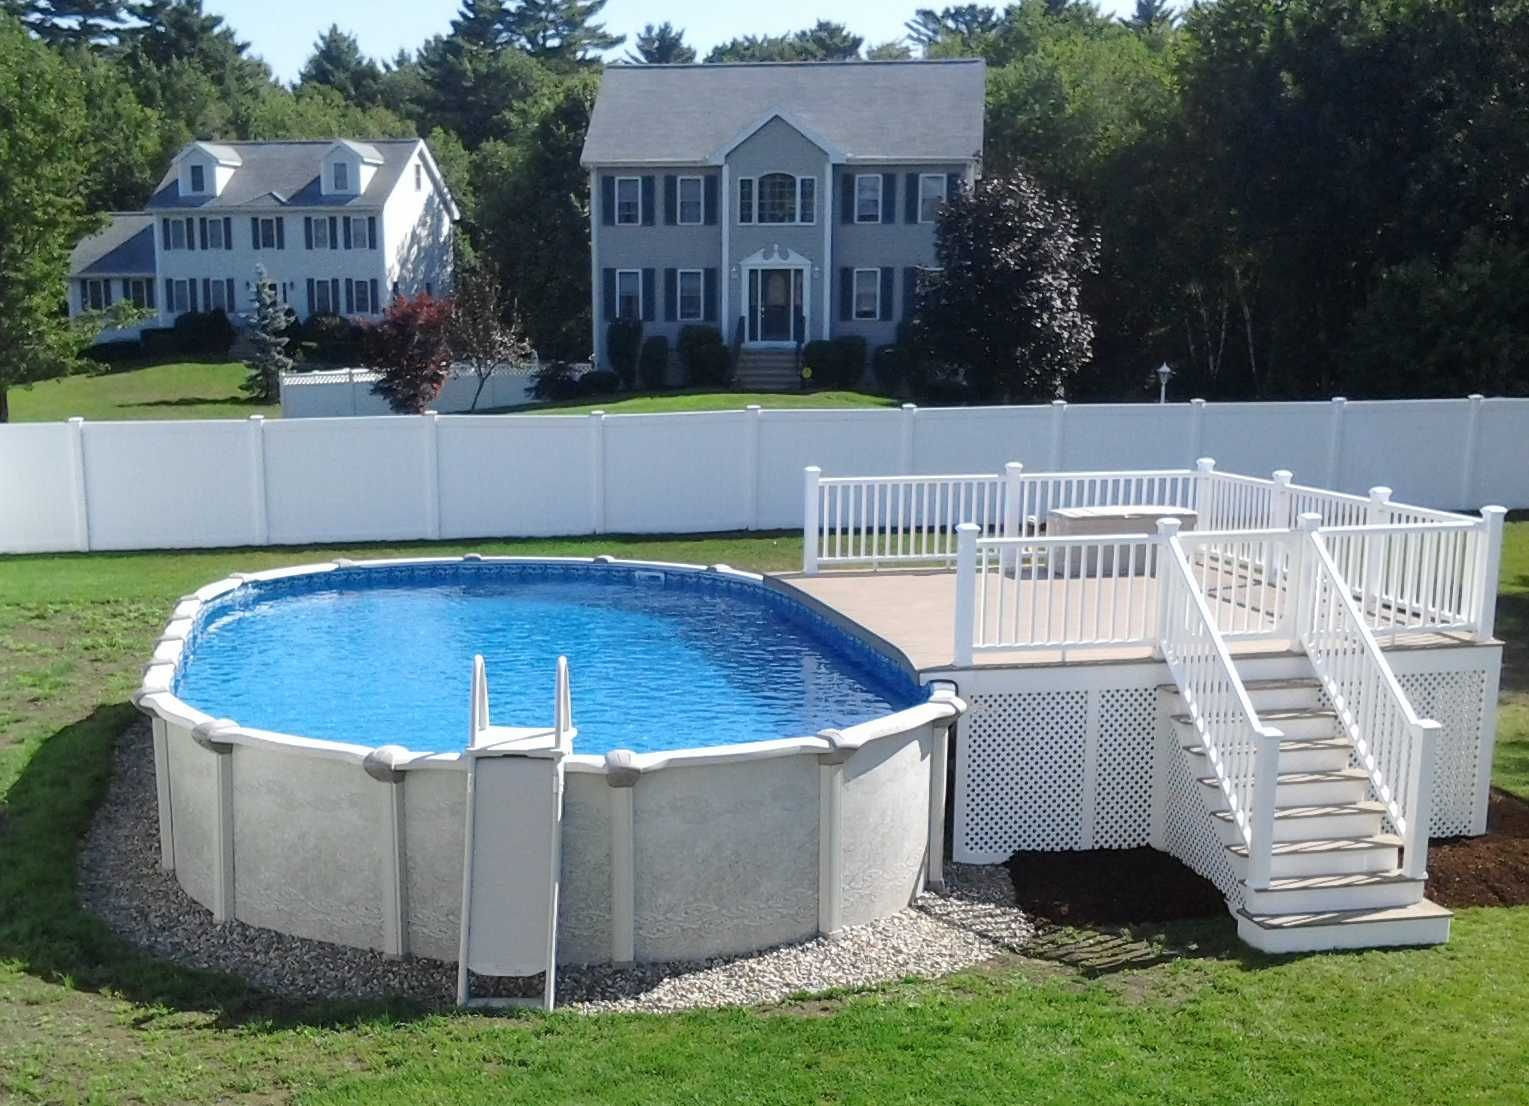 amazing deck designs for above ground swimming pools. Charming To Beautify Your Home Page With Exceptional Deck Pool Design  Beautiful Above Ground Ideas Featuring White Wooden Painted Amazing Decks Just Mass Quality Affordable